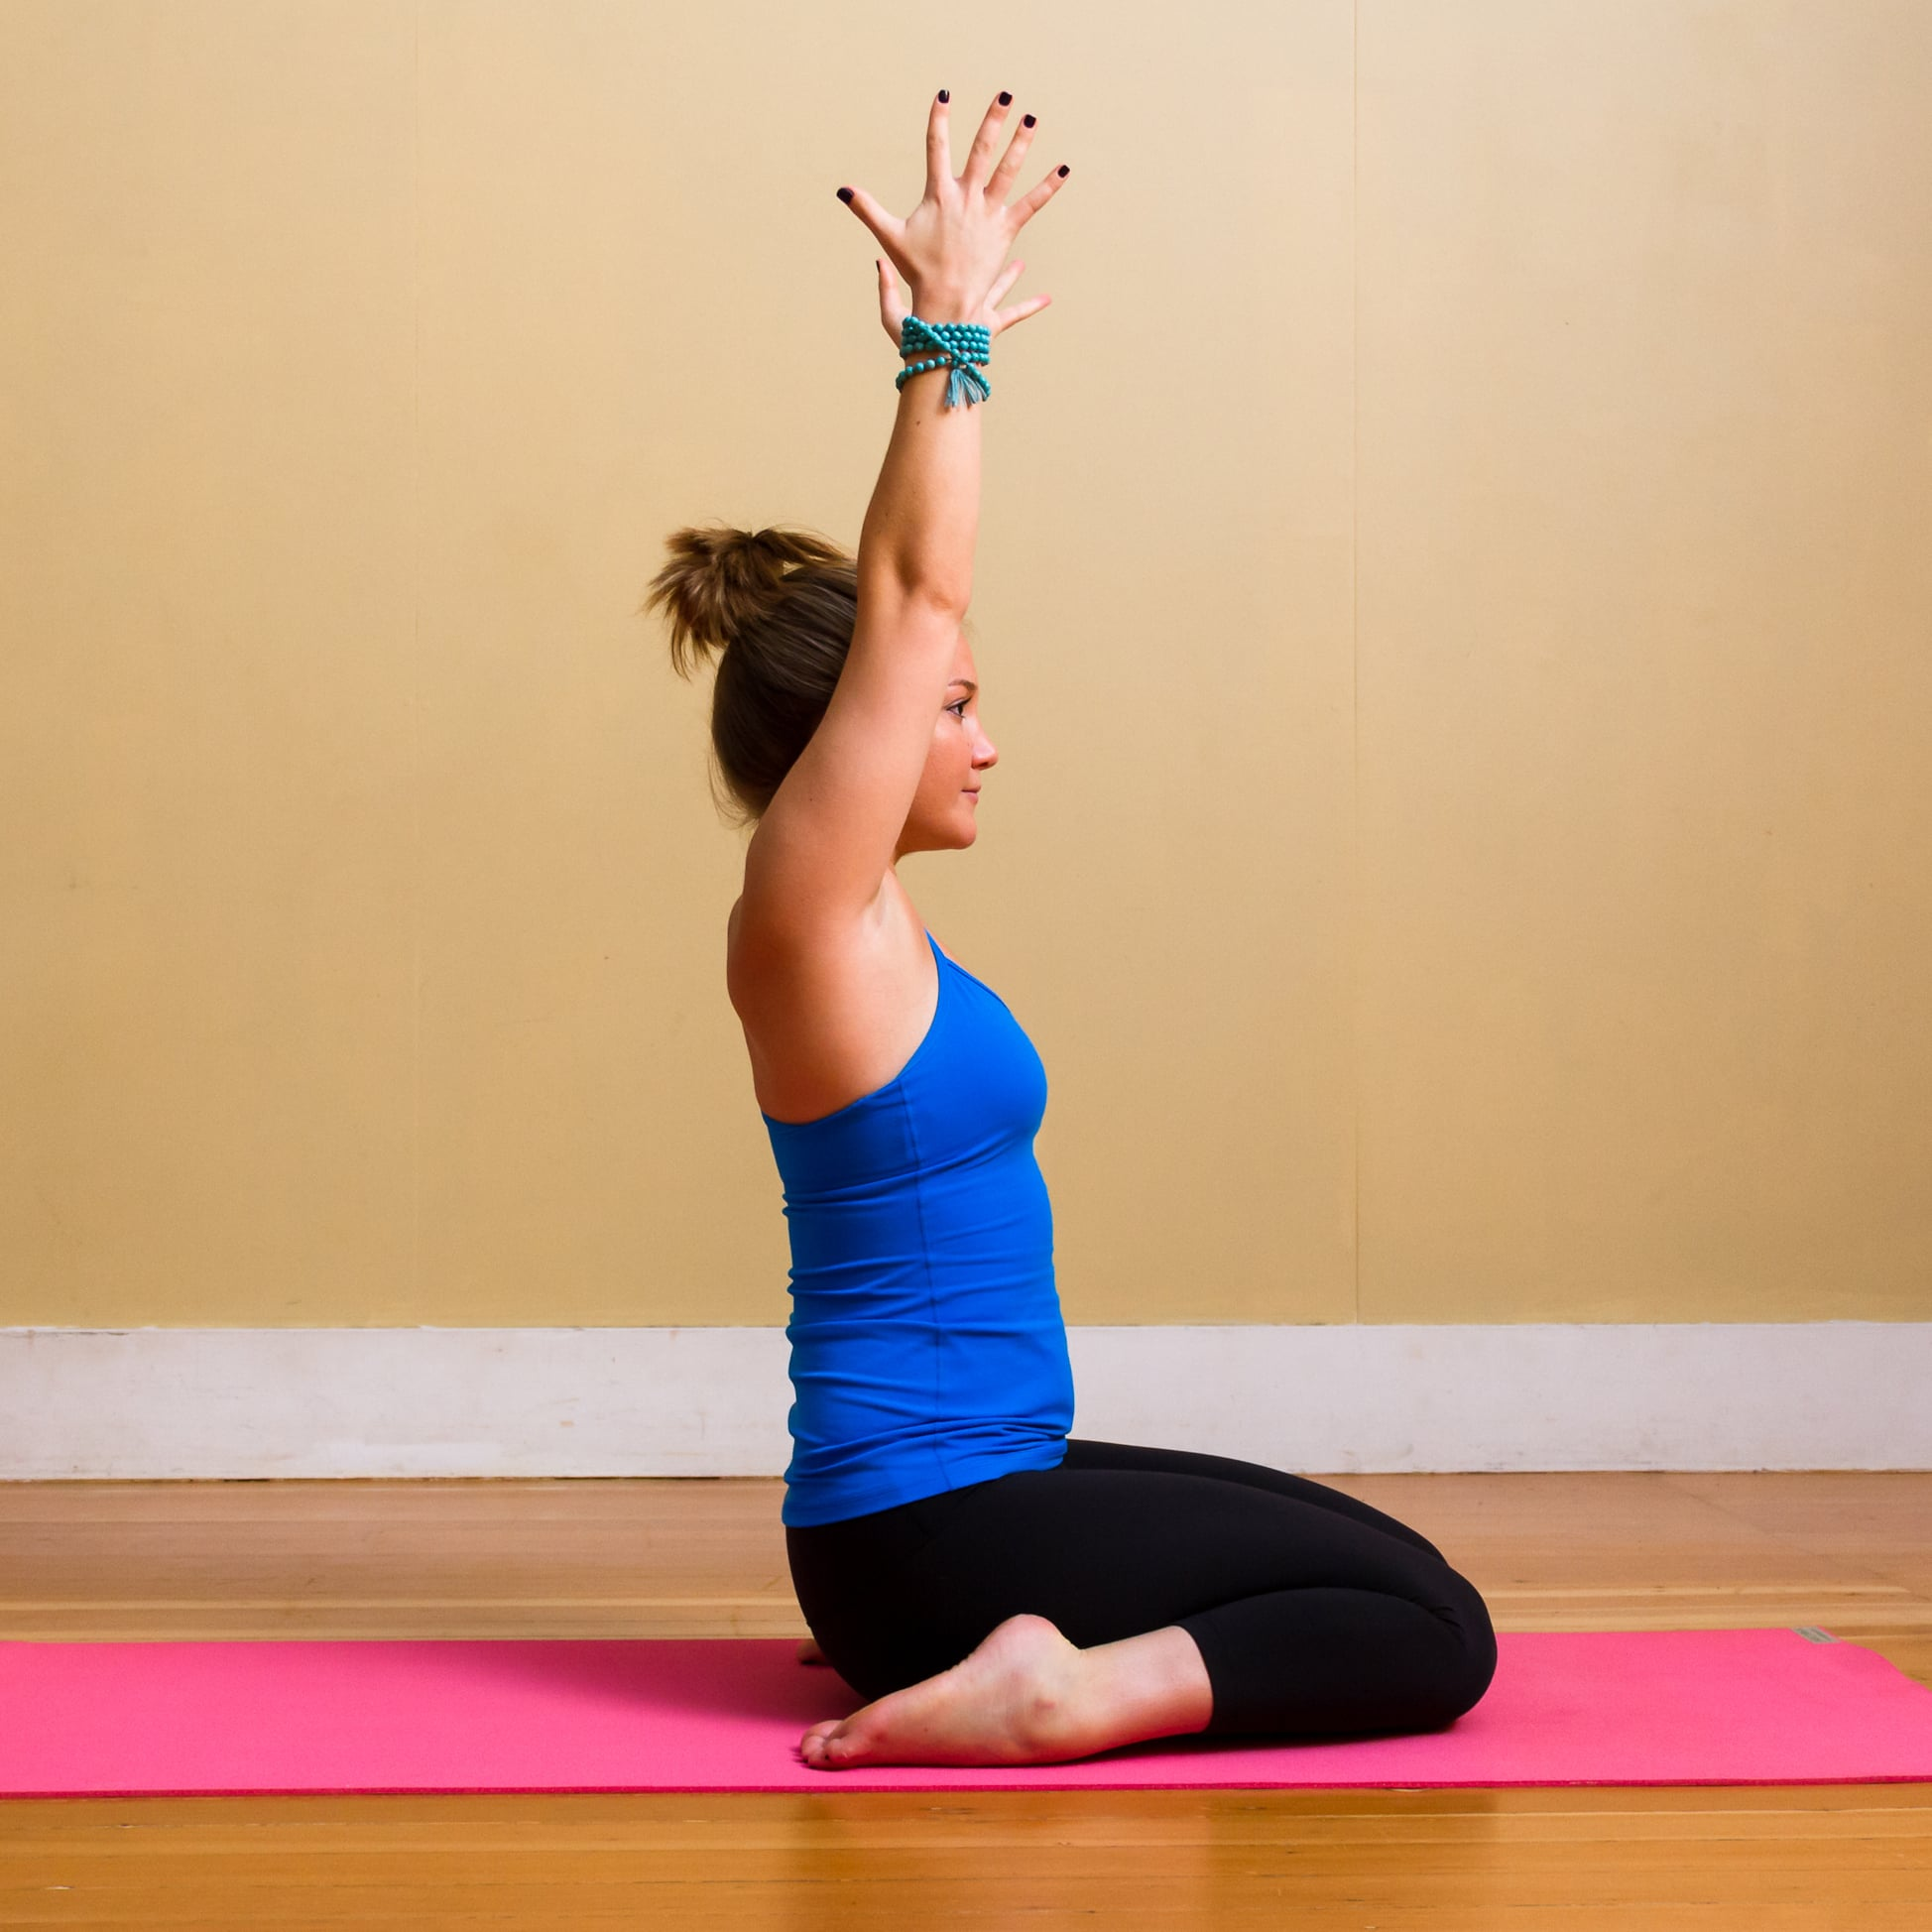 Yoga Poses To Try With Blocks Popsugar Fitness